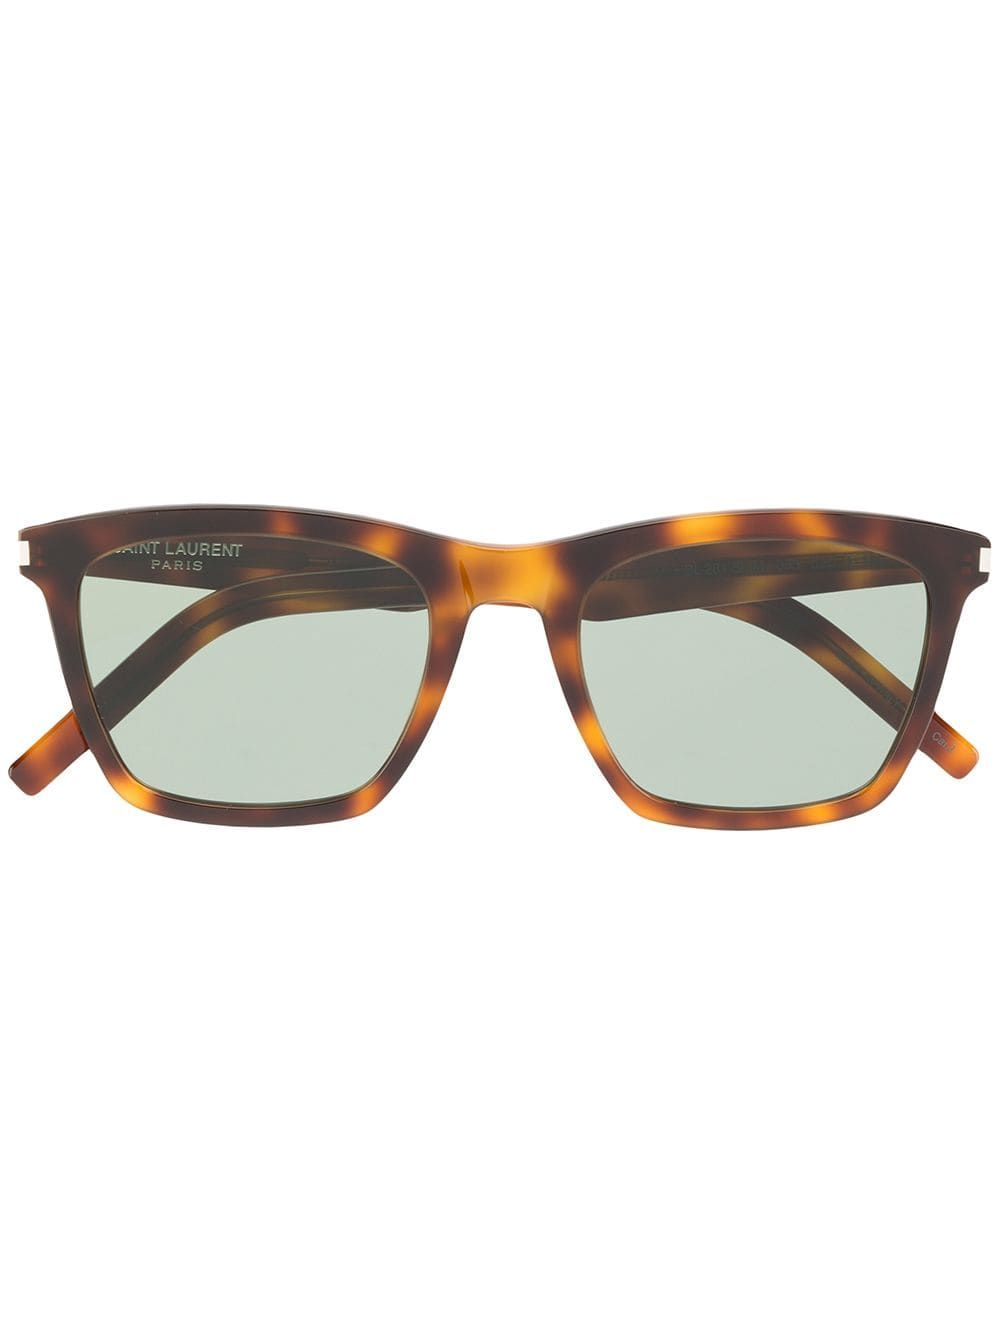 408e8dba644 Saint Laurent Eyewear Tortoiseshell Square Sunglasses in 2019 ...